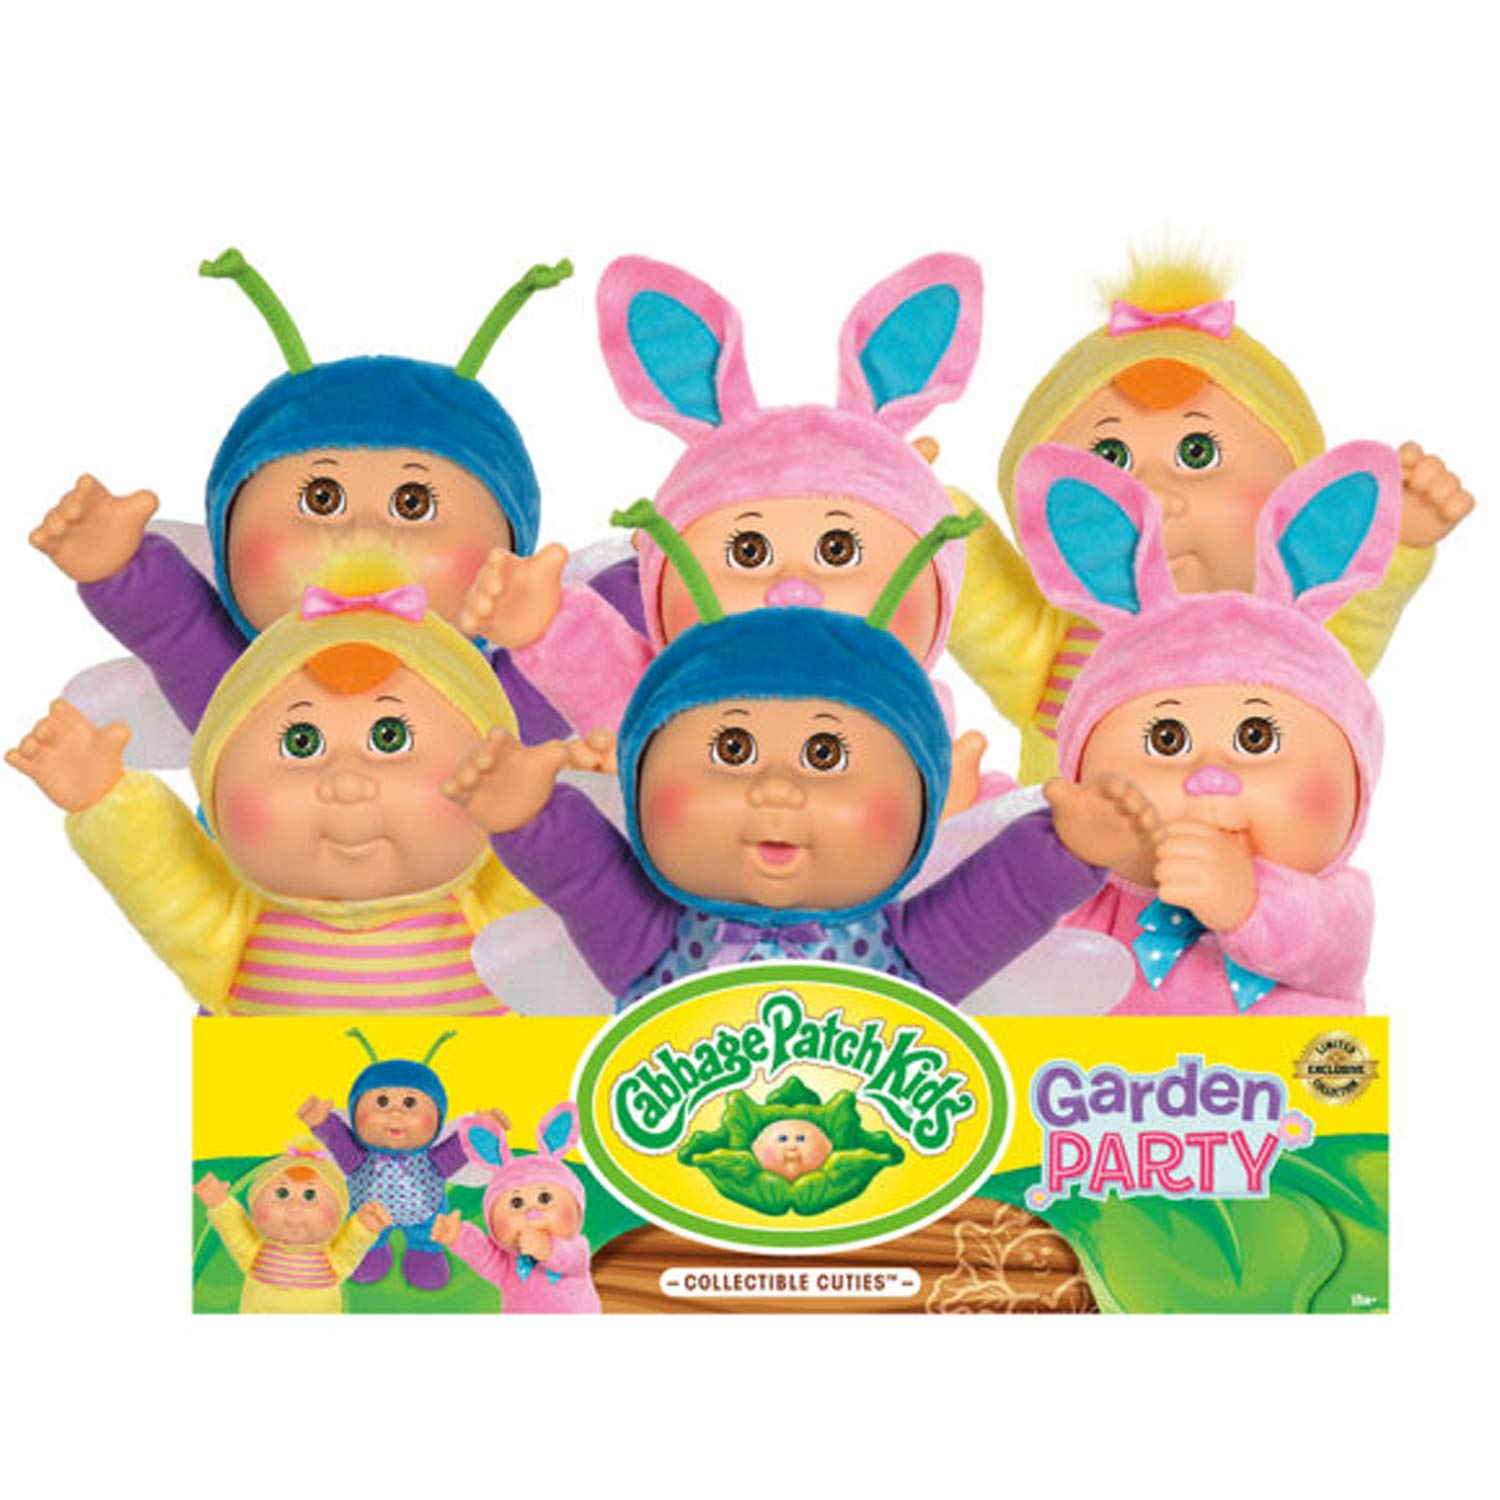 Cabbage Patch Kids Cuties Ava Bunny 9 Inch Soft Body Baby Doll Garden Party Collection